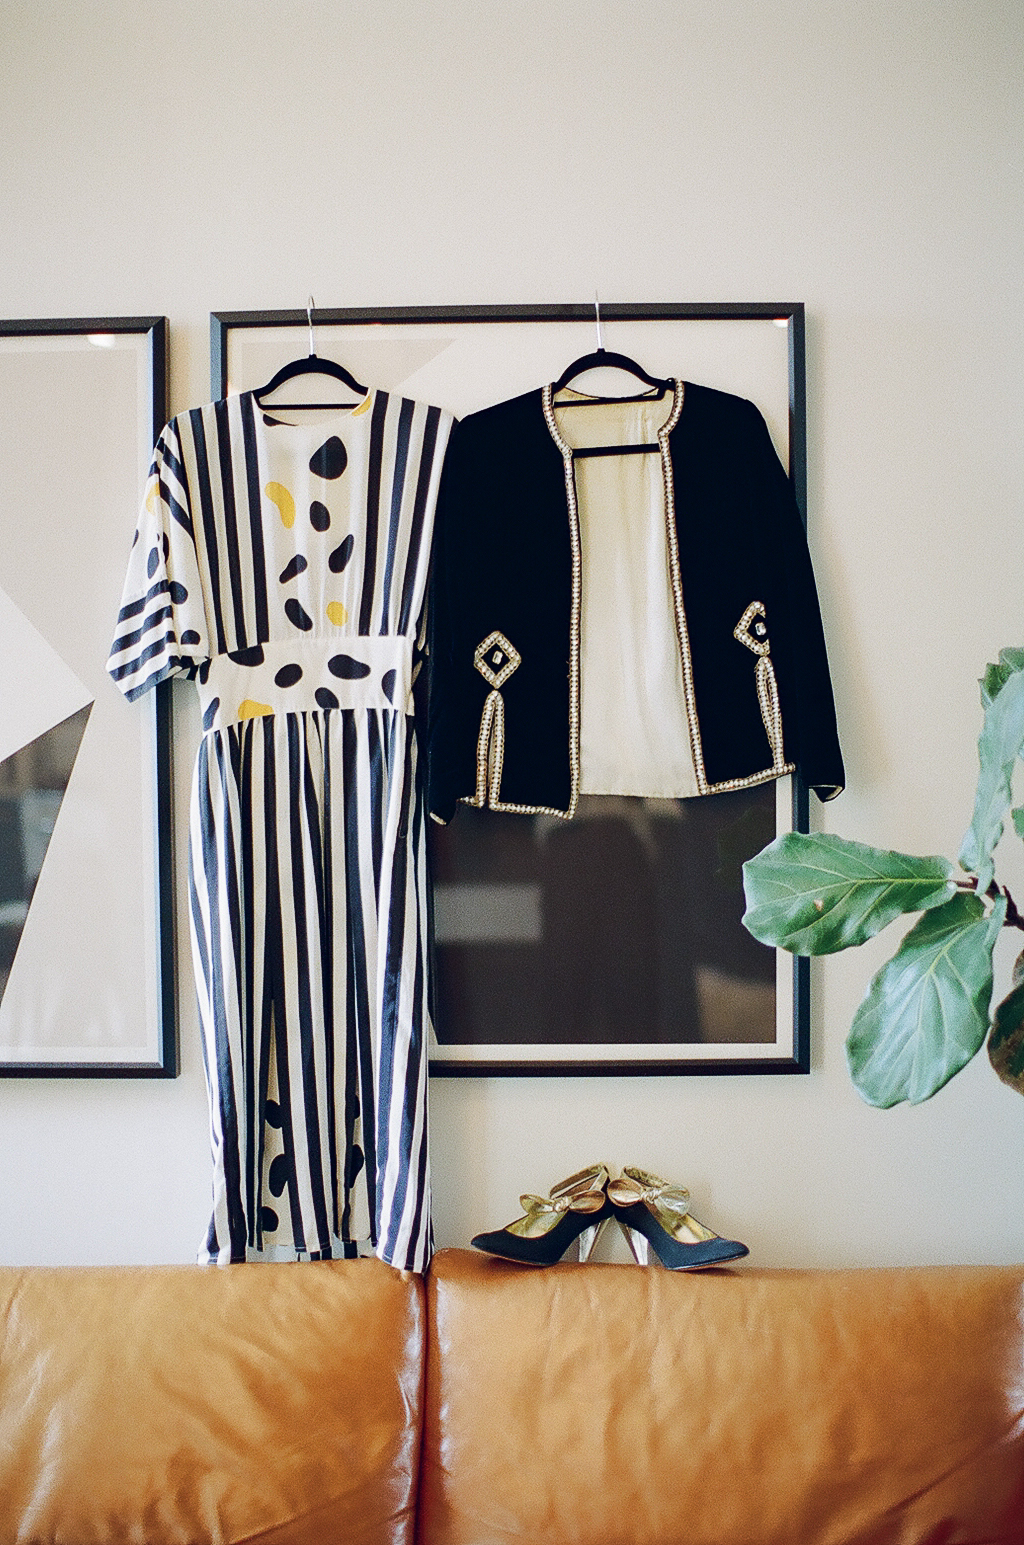 I love how bold and architectural Susan's vintage is!